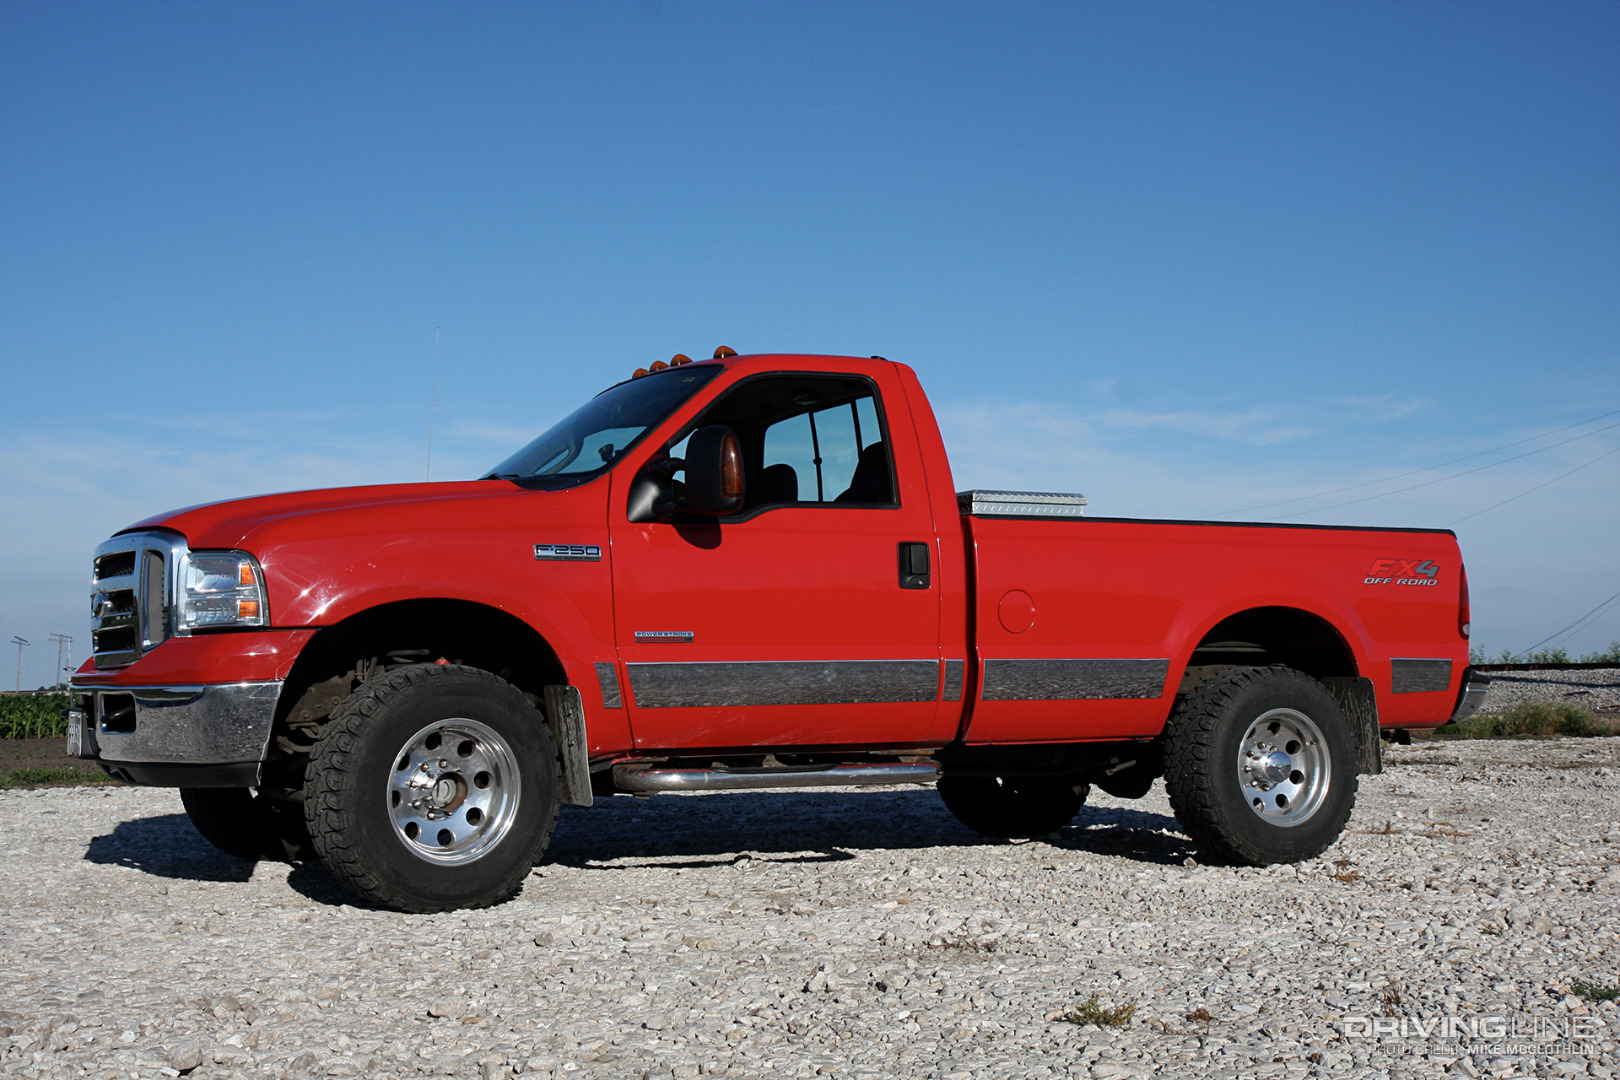 Ford F250 Diesel Mpg >> Buying a Used Diesel Truck: Everything You Need to Know ...